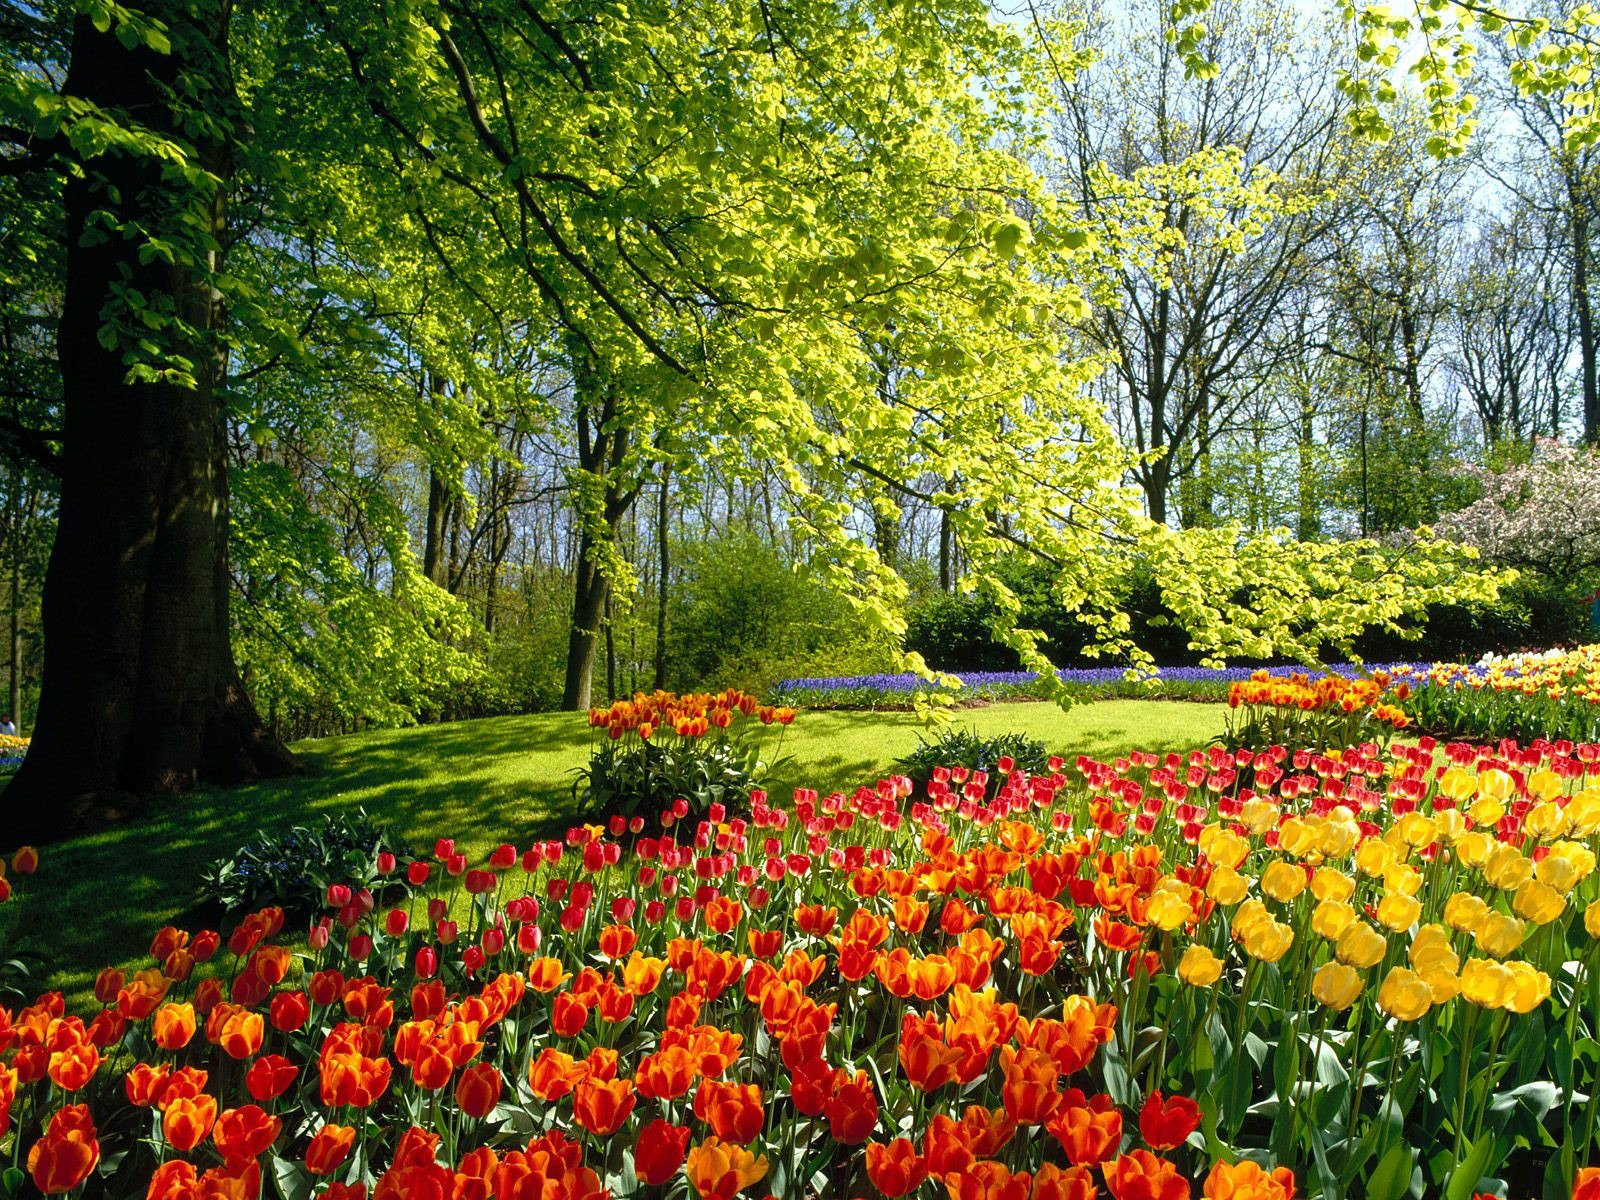 spring nature wallpapers 1080p - photo #37